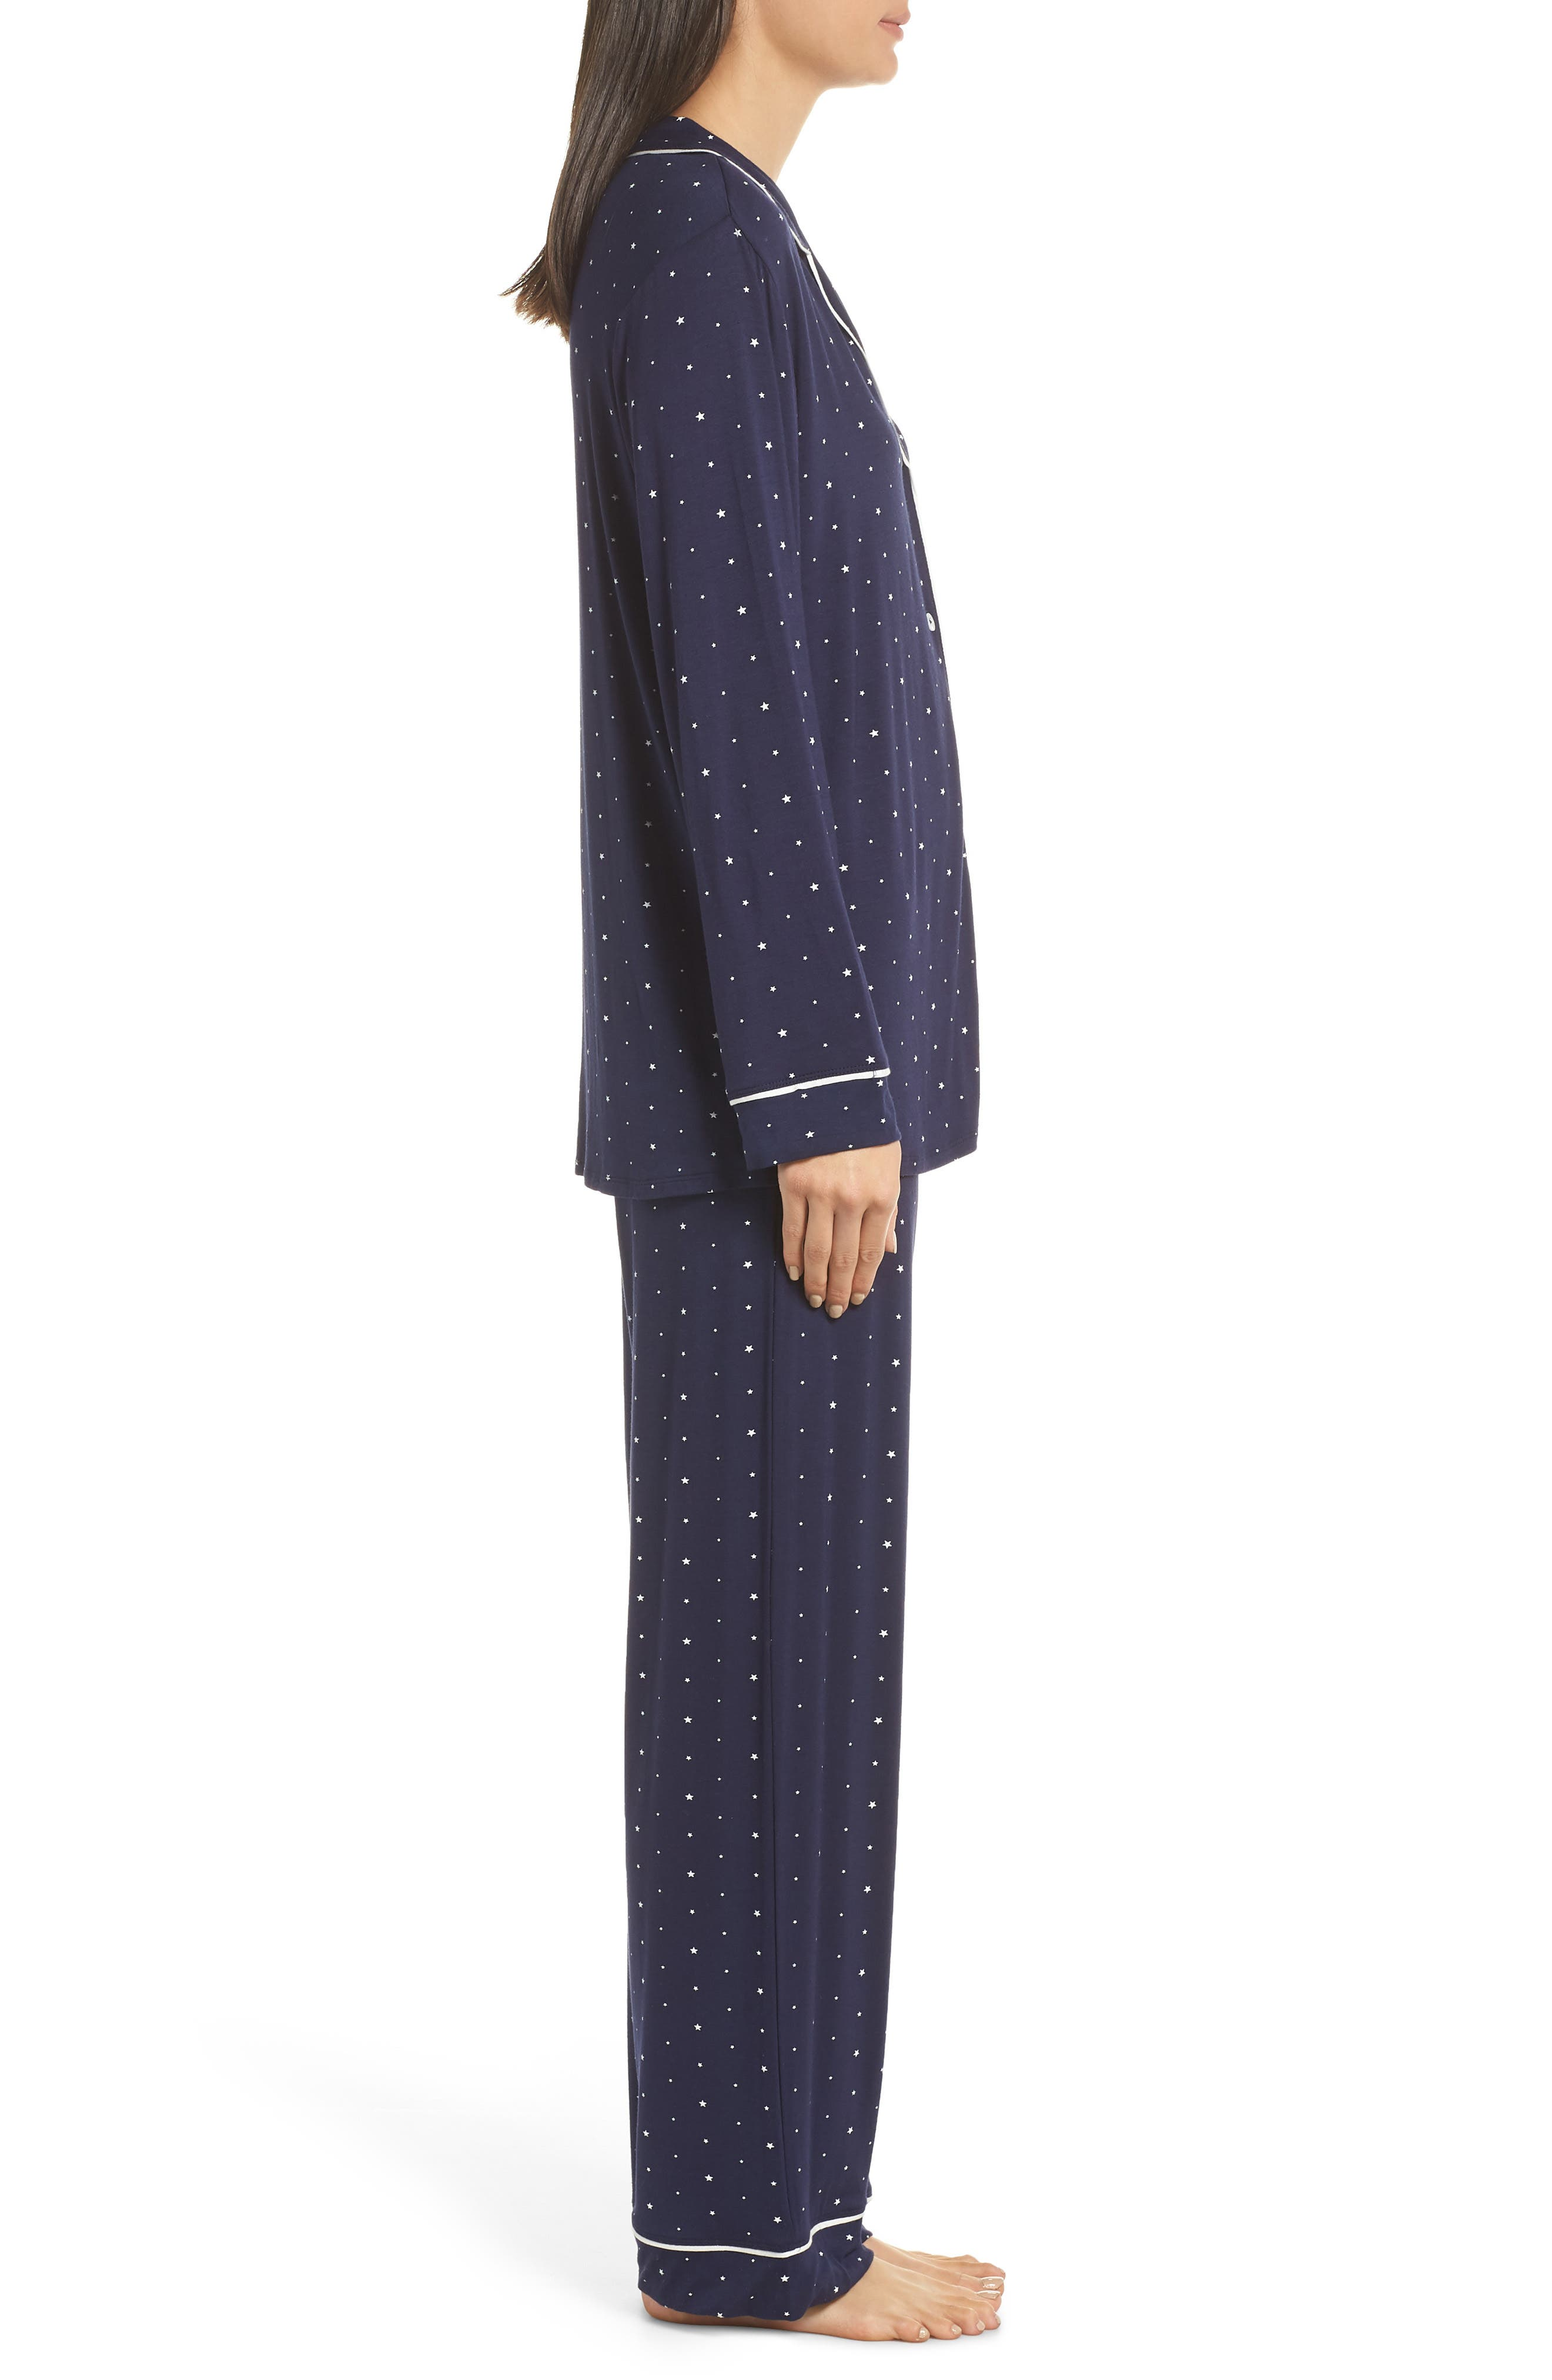 Sleep Chic Pajamas,                             Alternate thumbnail 3, color,                             NORTHER STARS/ IVORY